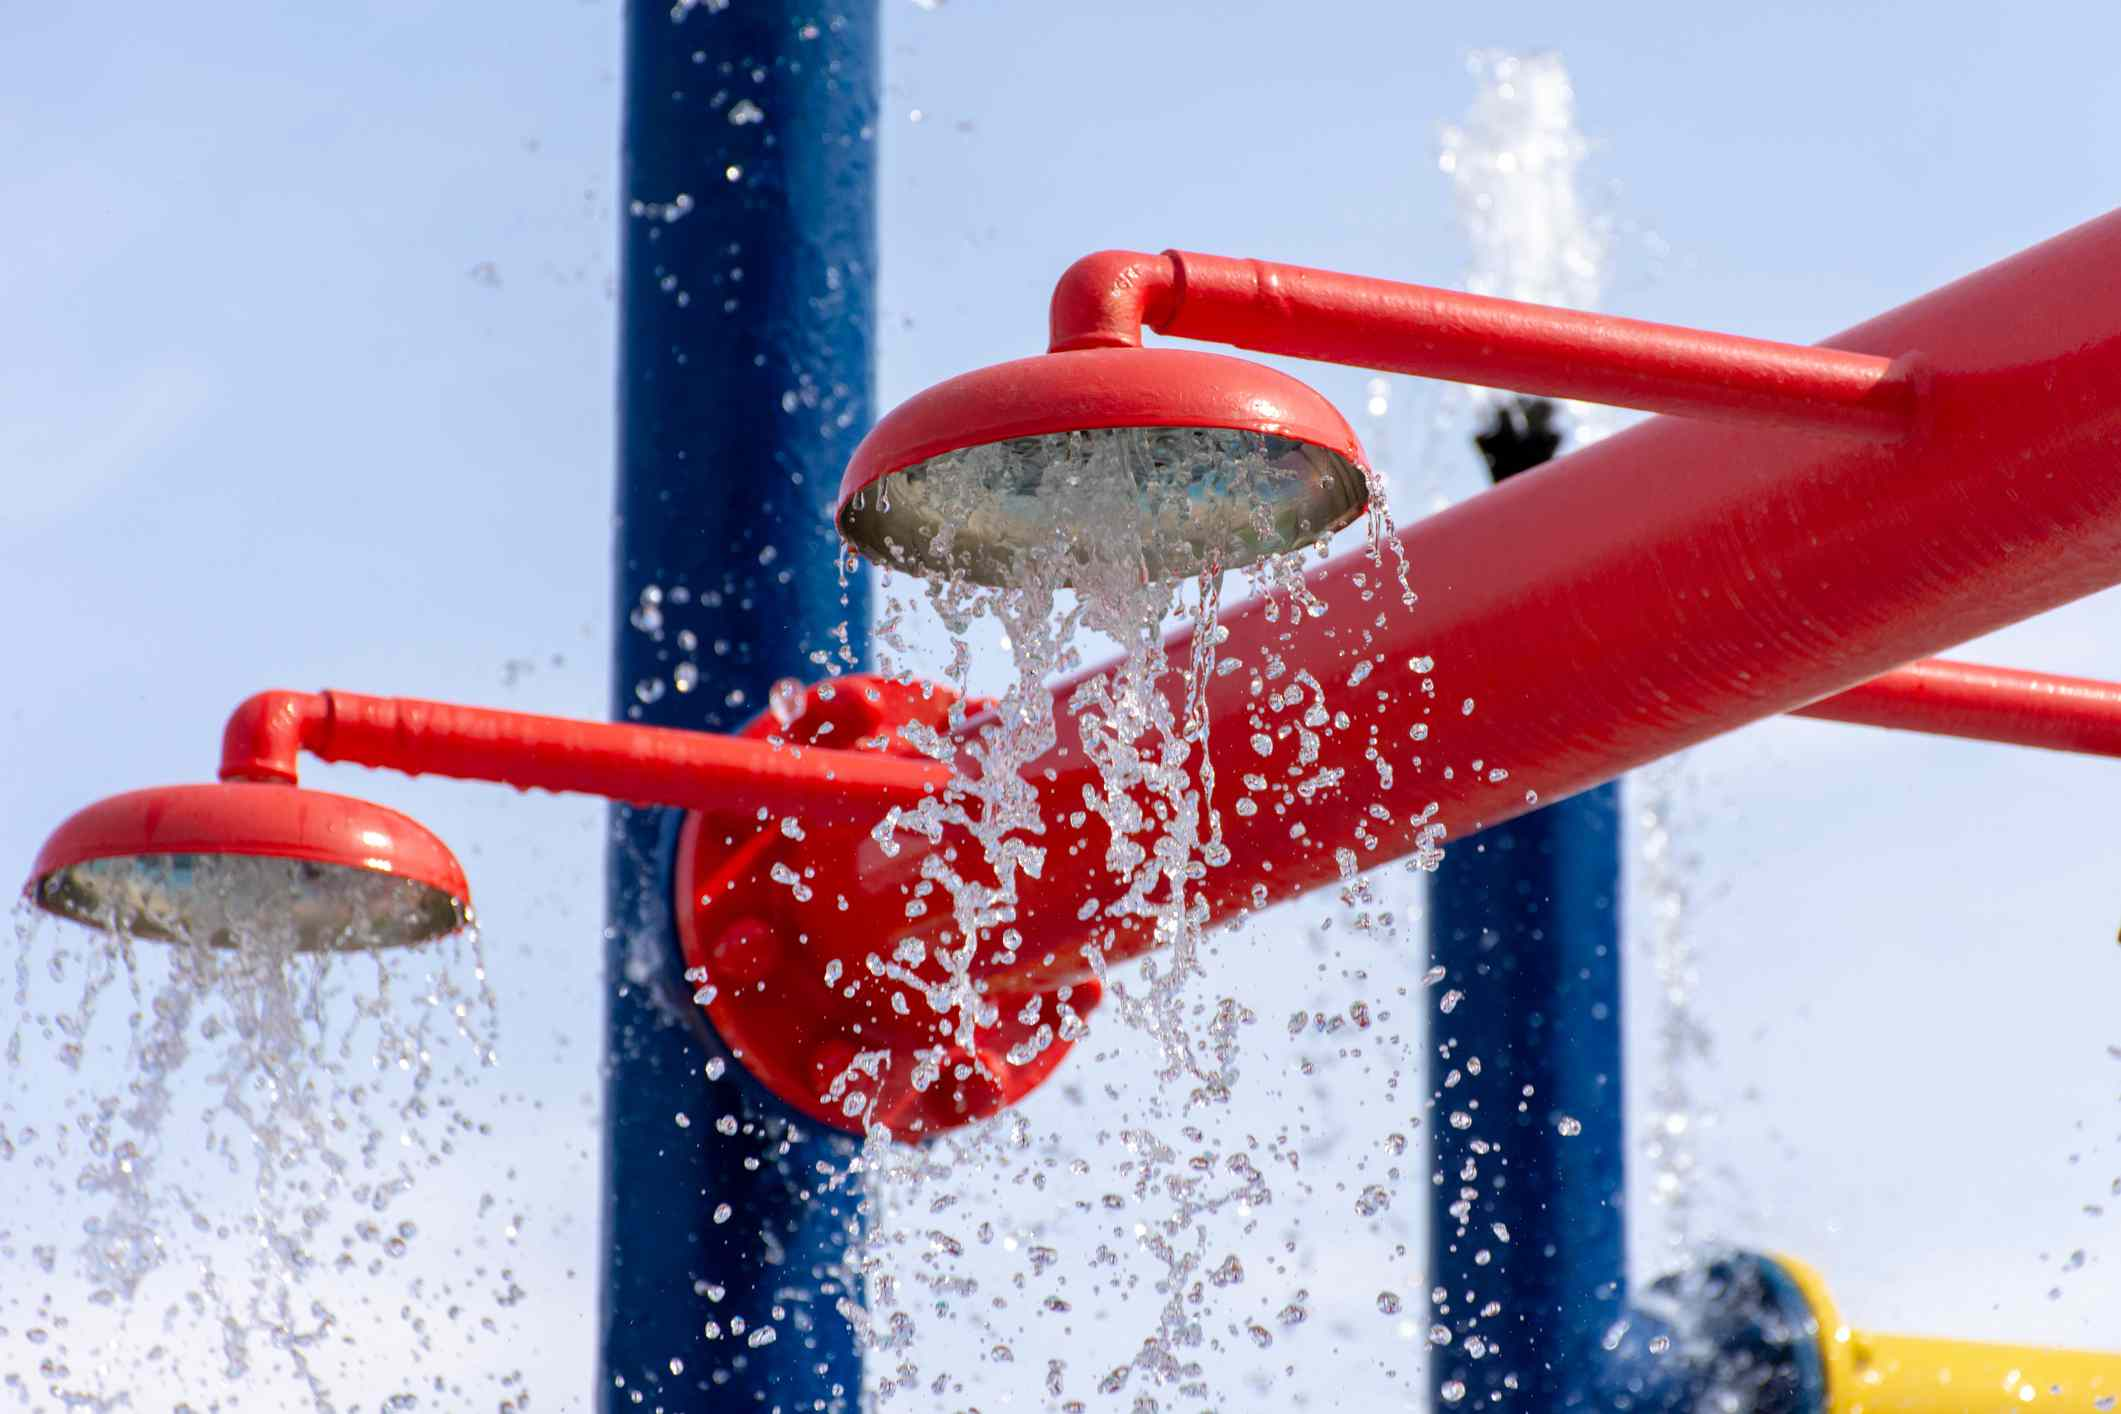 Summertime fun for the kids at the splash pad to play with water falling from bright colored fountains.